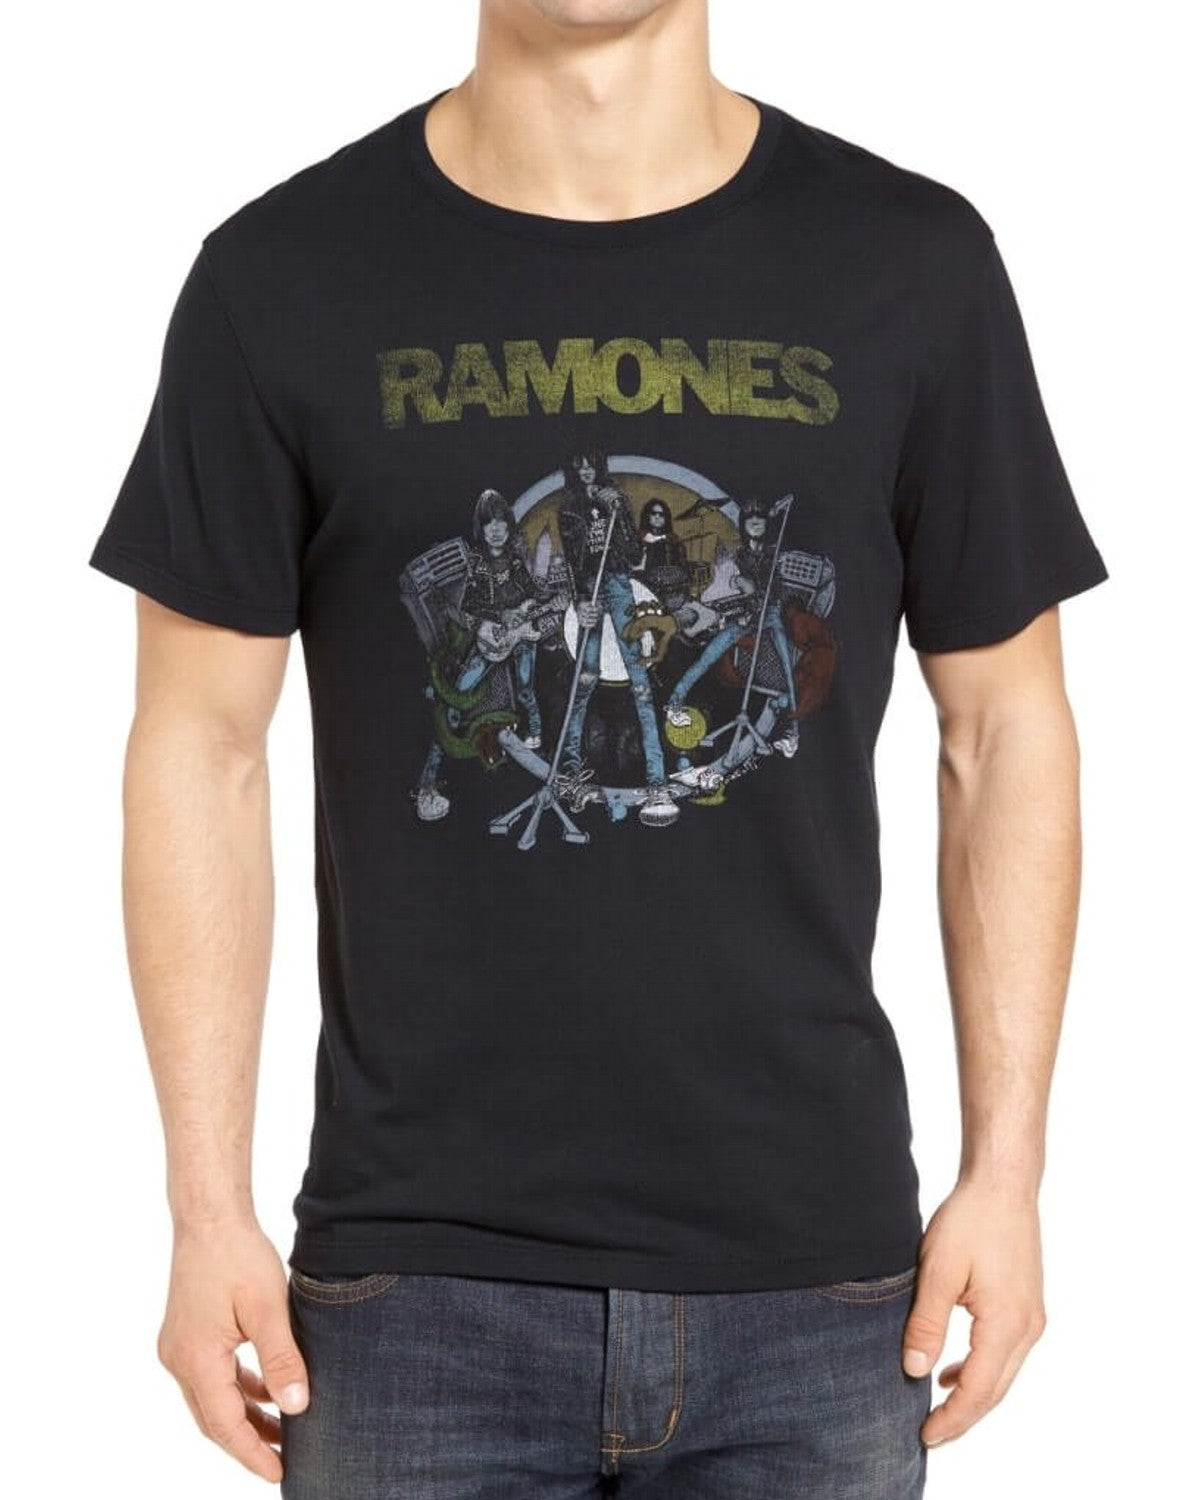 John Varvatos RAMONES ILLUSTRATION GRAPHIC TEE